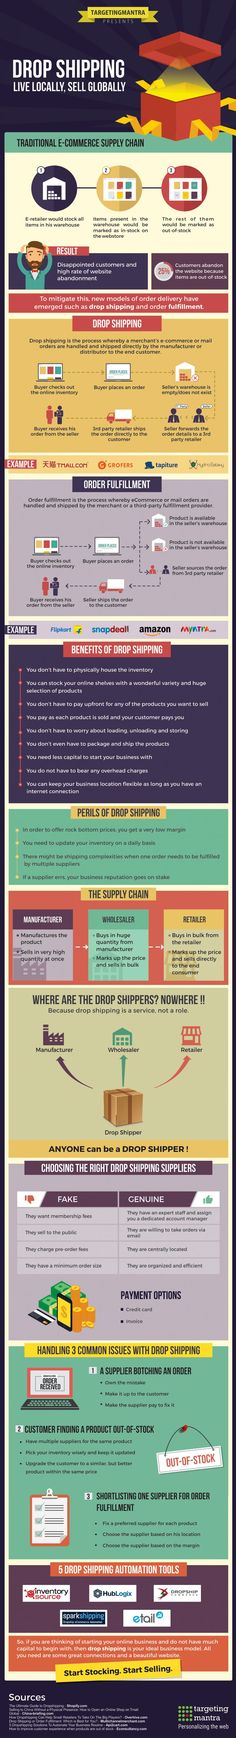 Drop Shipping – Live Locally, Sell Globally [Infographic]   #dropshipping #ecommerce